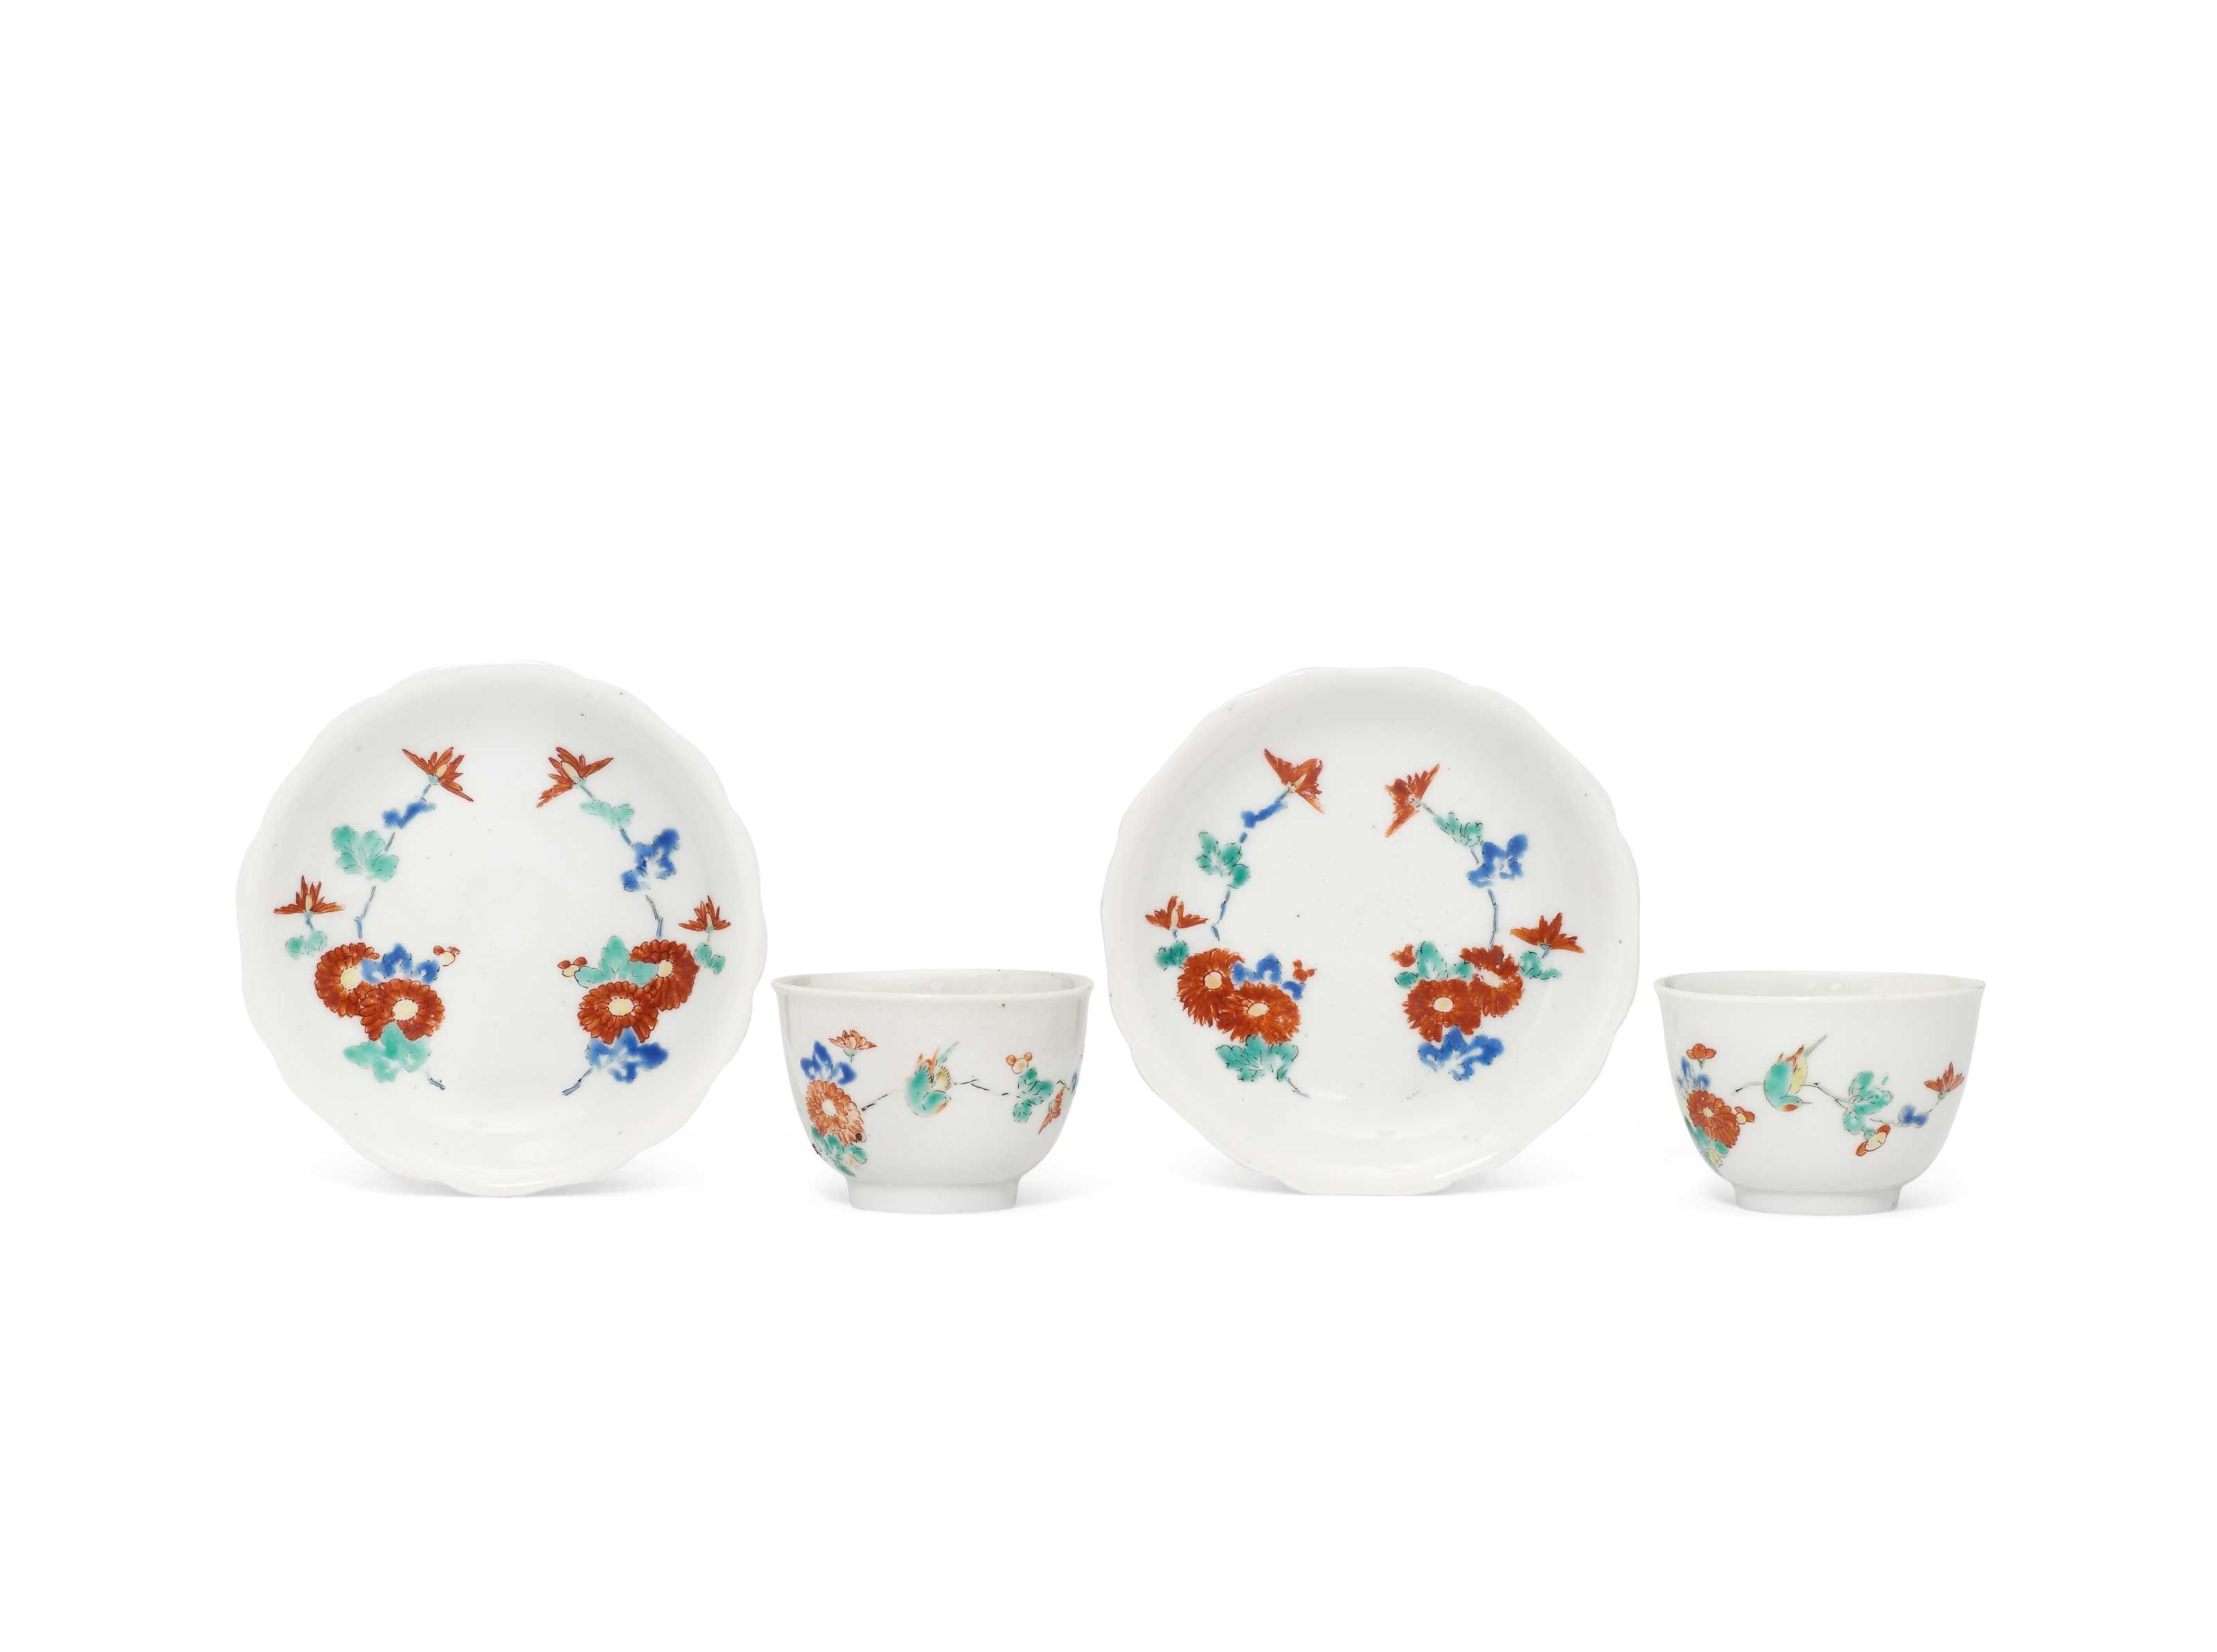 A Pair of Small Kakiemon Tea Bowls and Saucers Christie's Japanese Art at the English Court